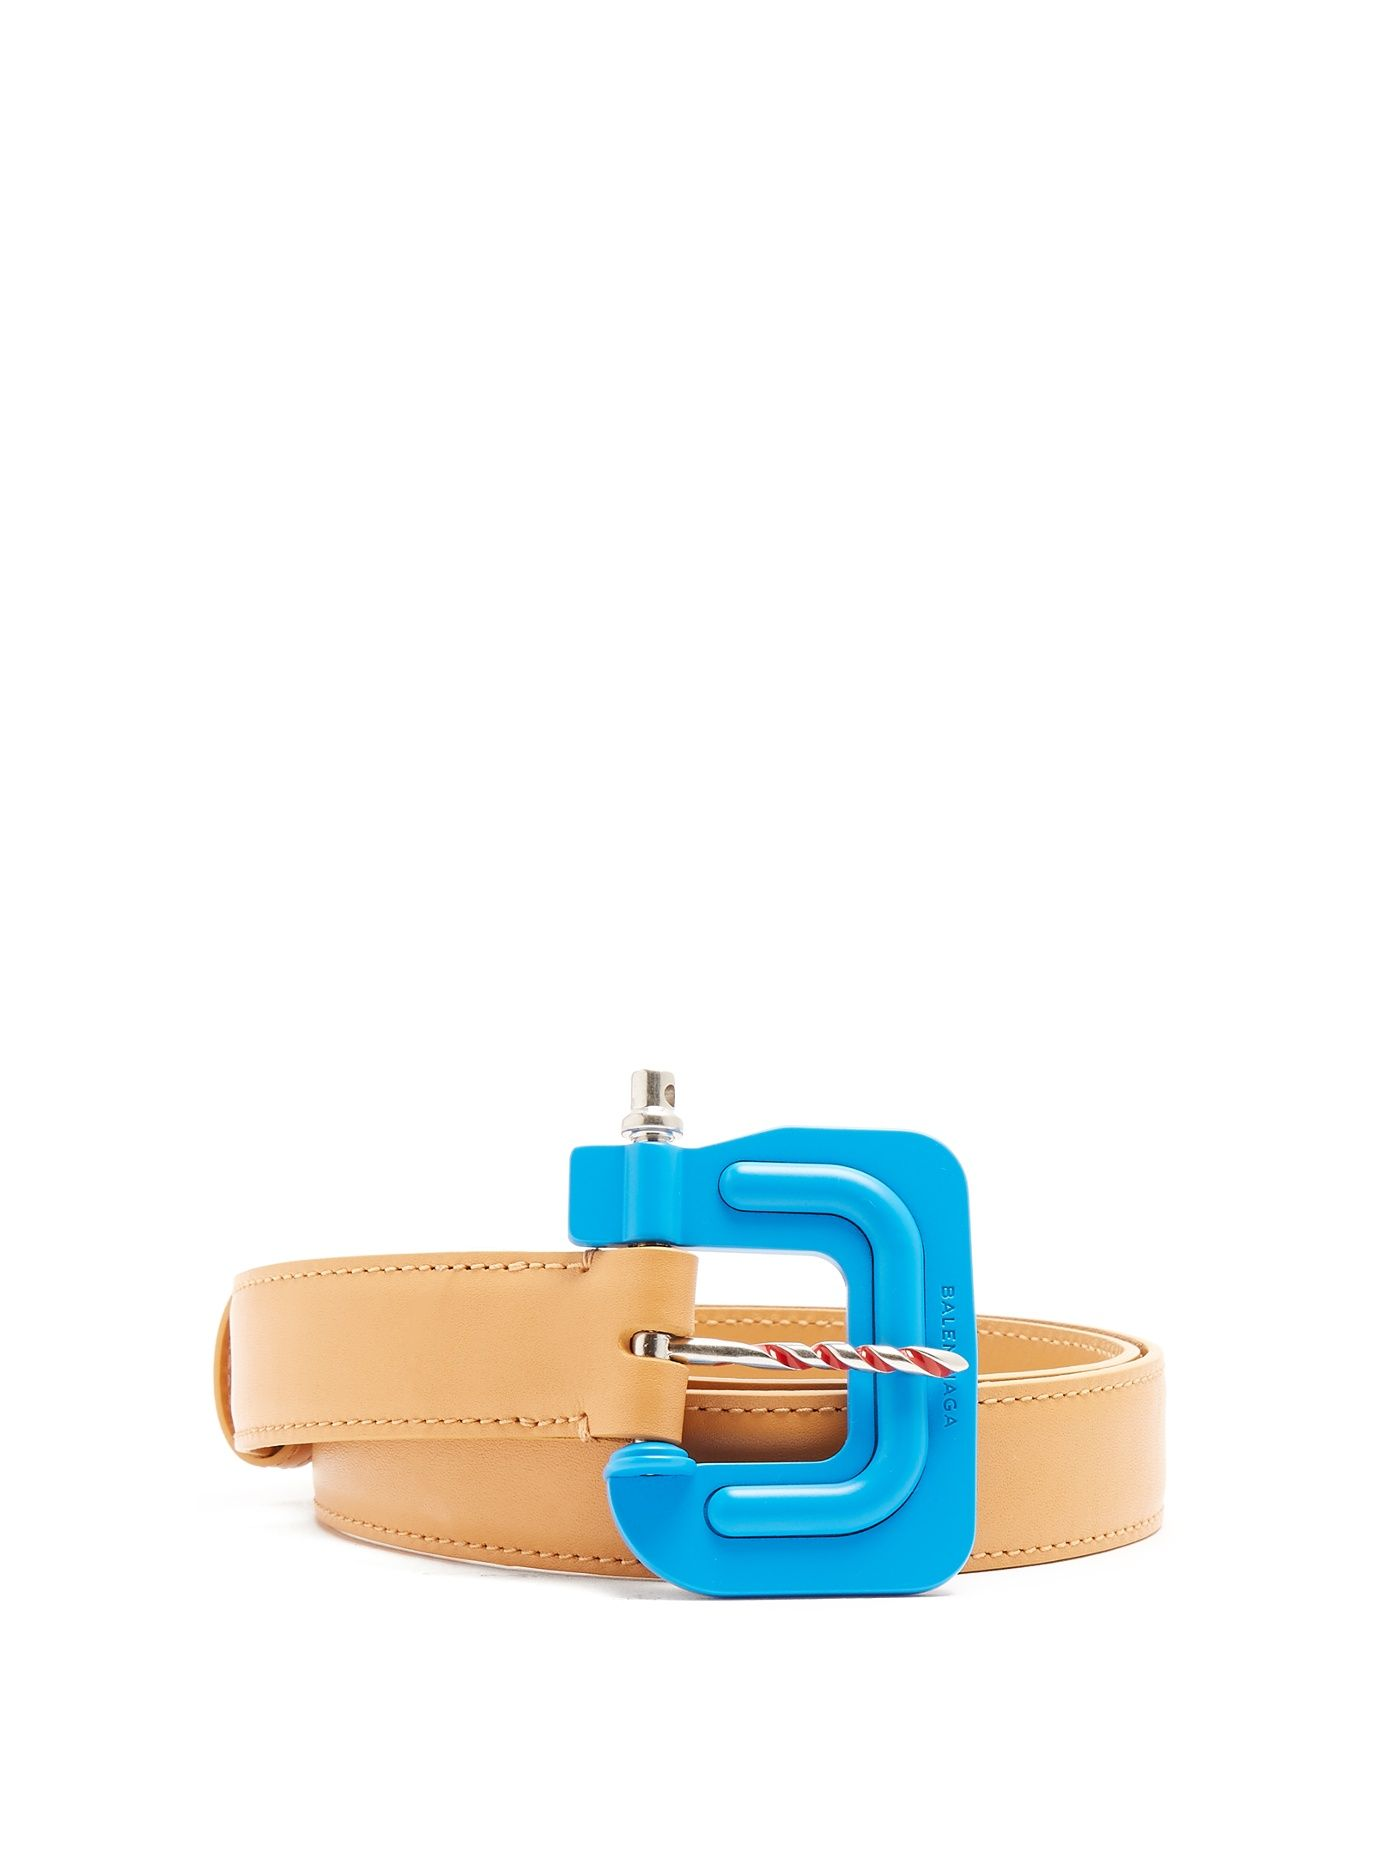 Clamp-buckle leather belt Balenciaga gcyFRkZw3